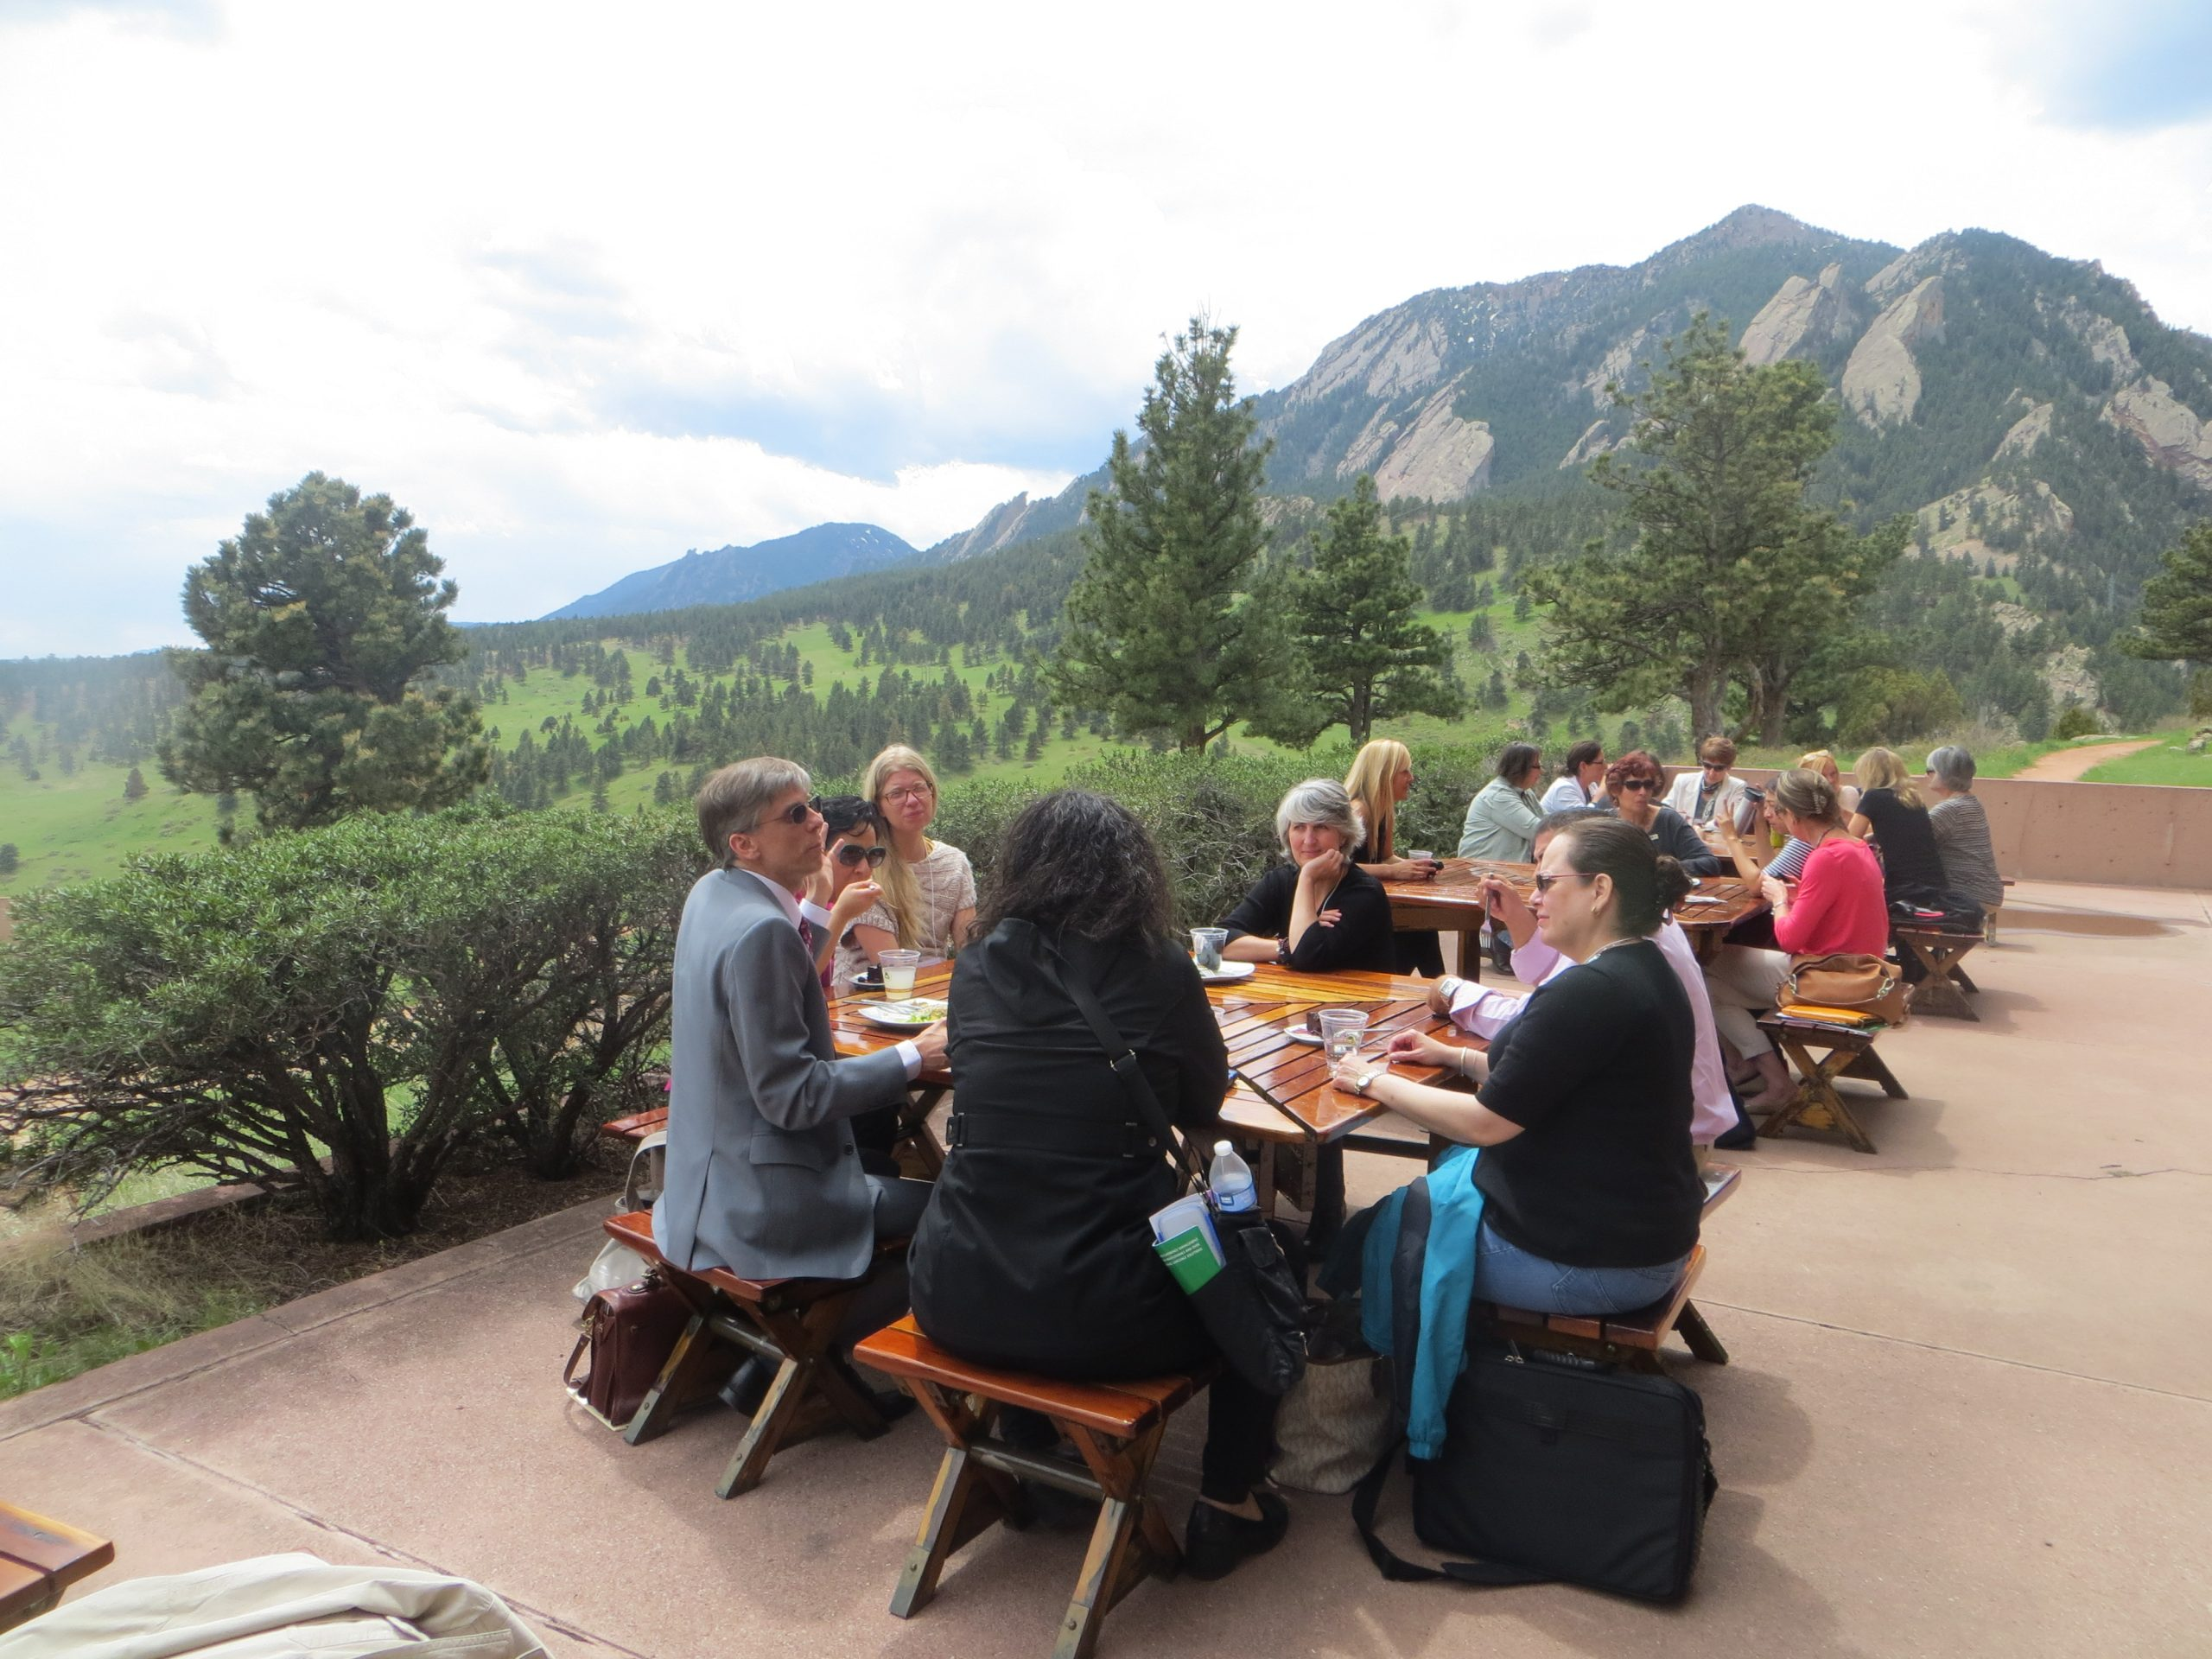 Attendees enjoyed an al-fresco lunch with spectacular views of the Rocky Mountains.